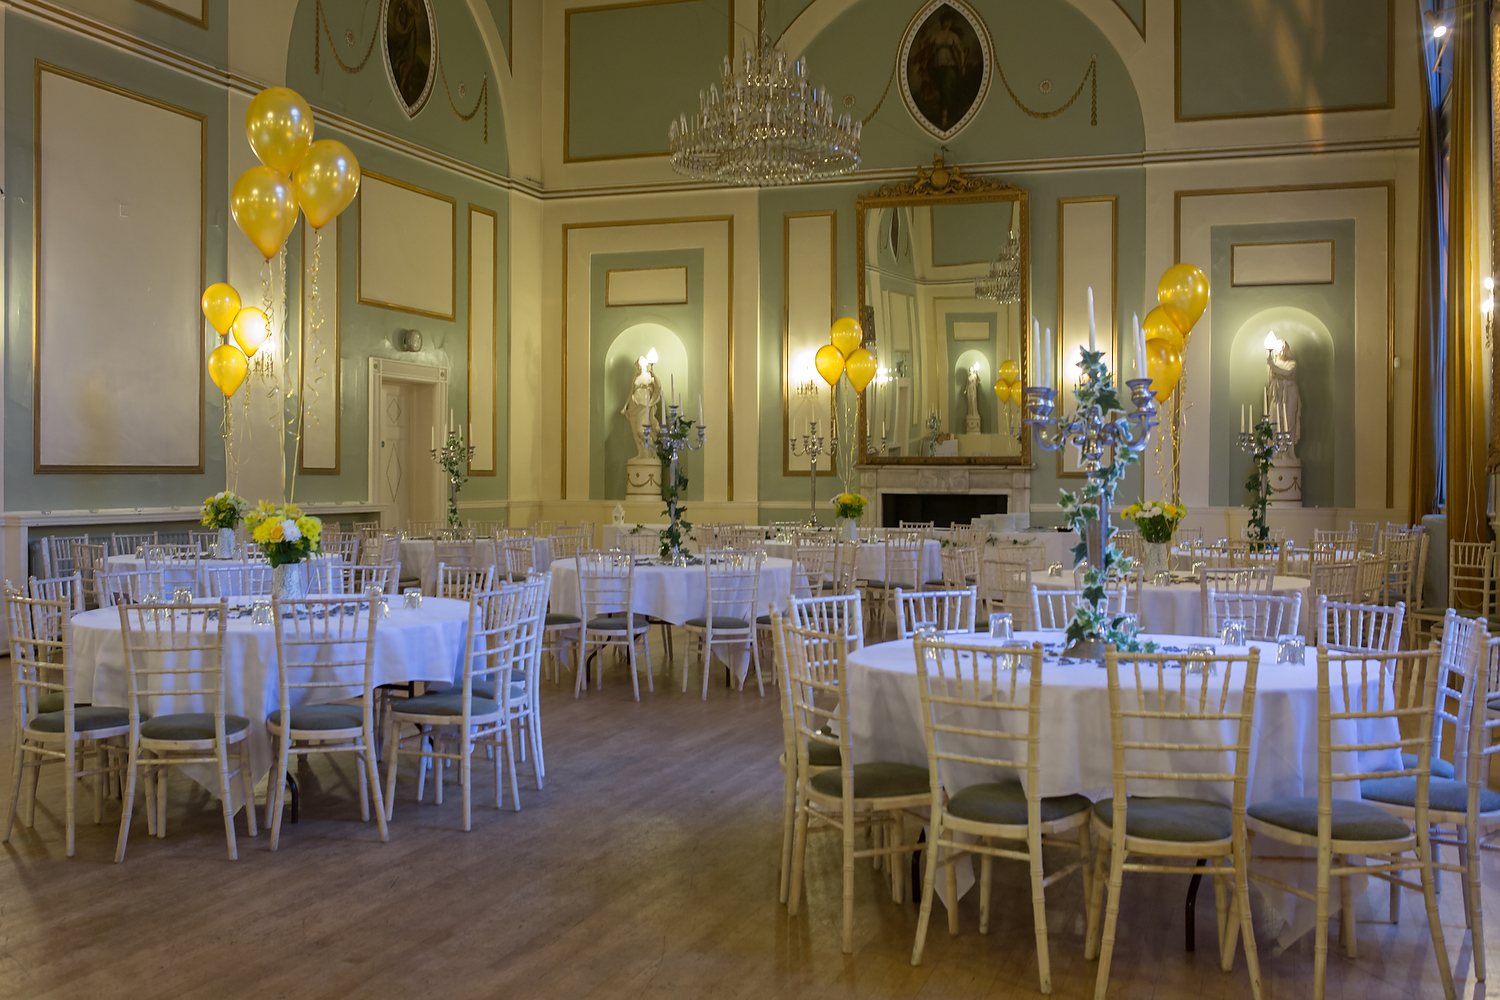 charnwood_weddings_city_rooms_leicester_dave_jane0.JPG